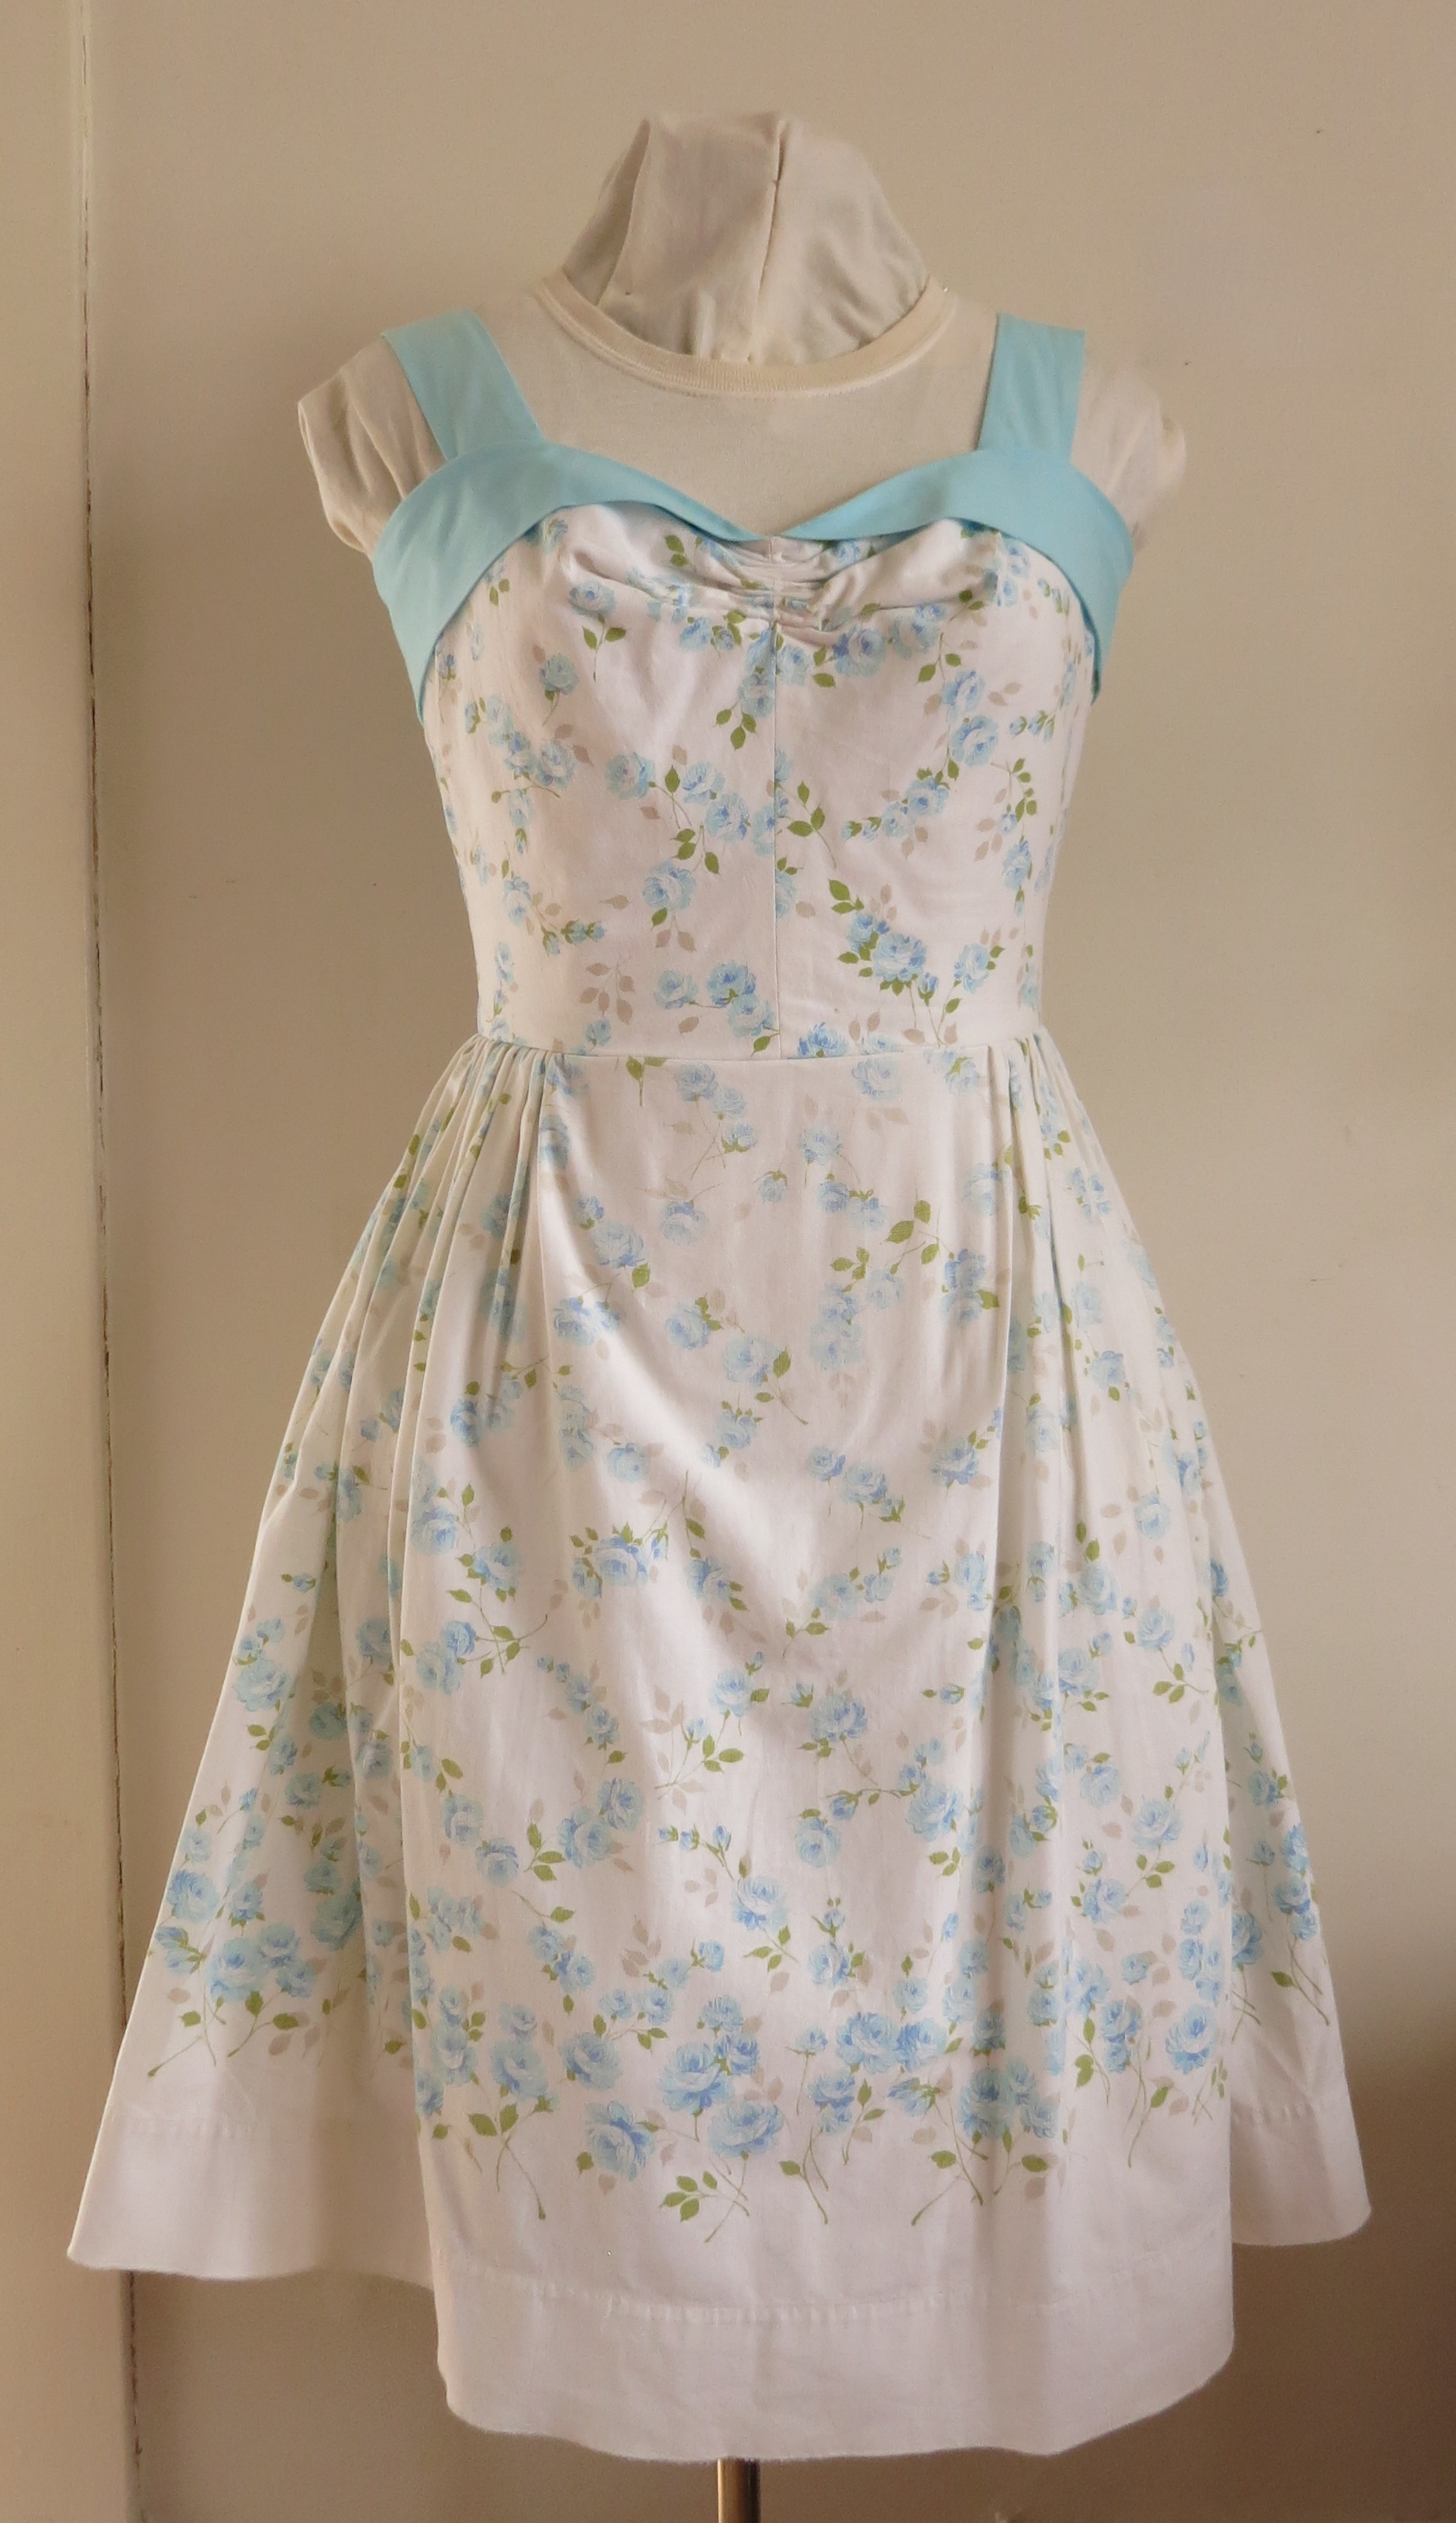 Gertie's Sweetheart Sundress by Heather Lee Bea 2013. Cotton Sheeting.